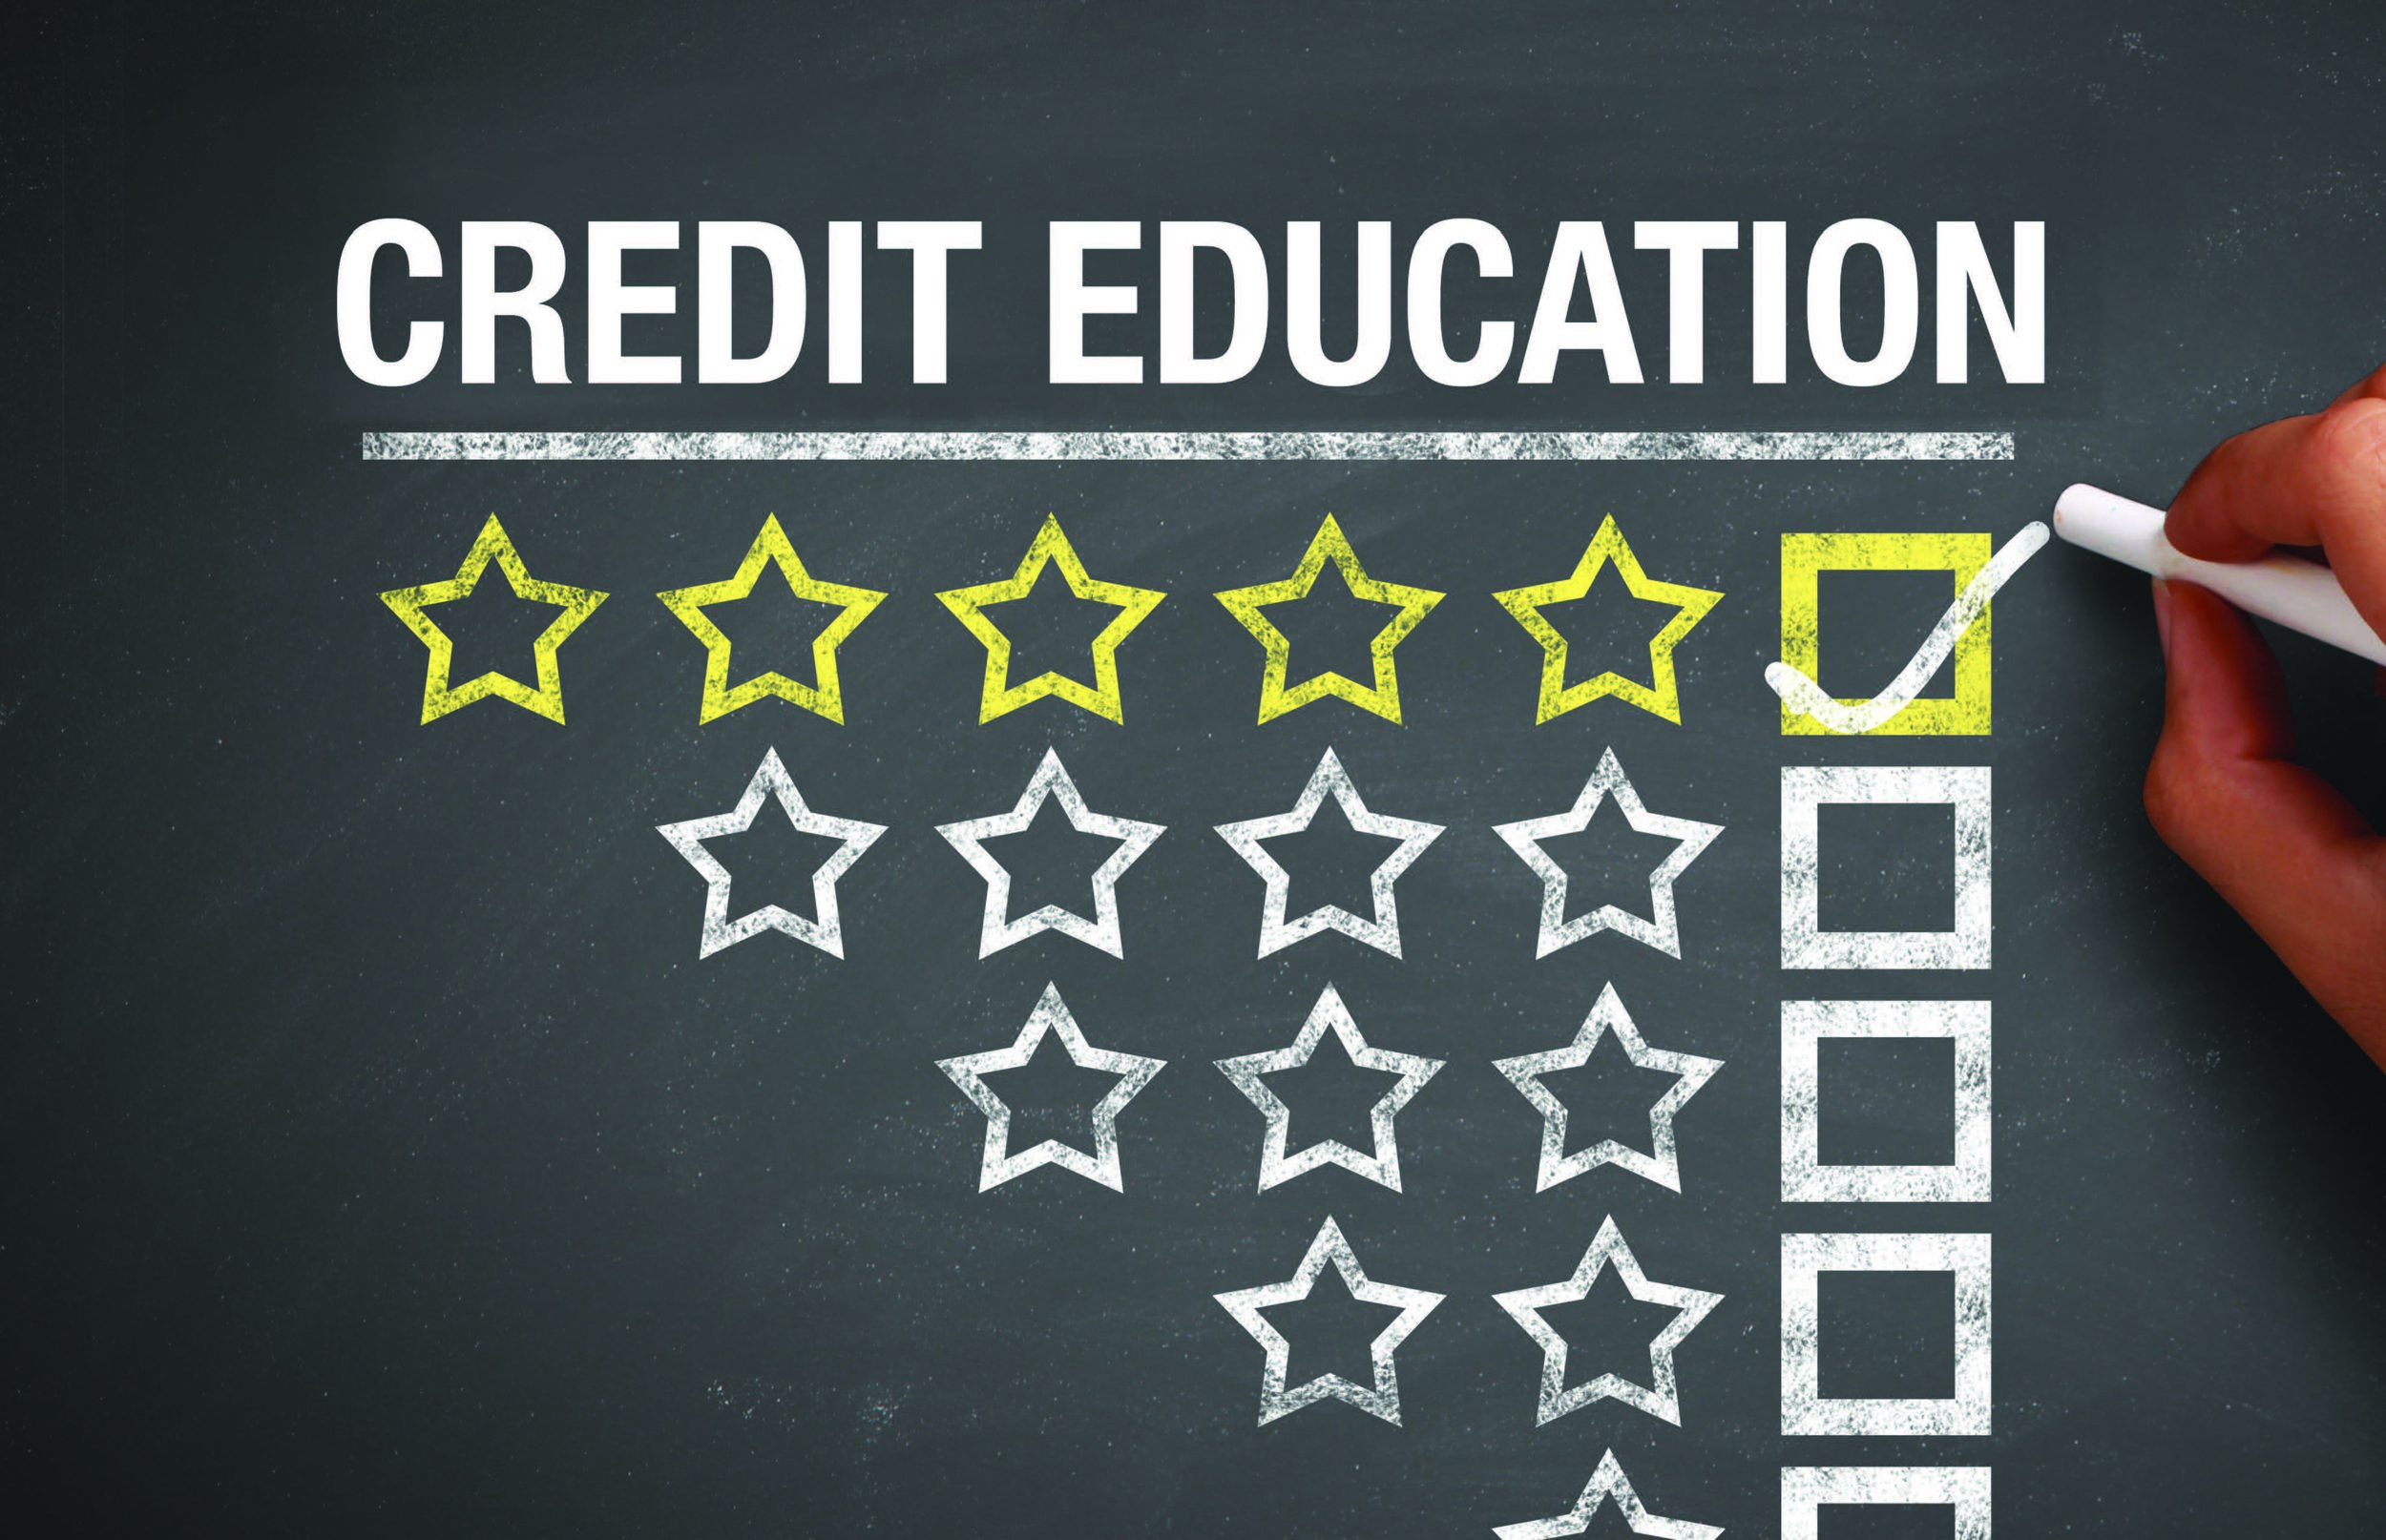 We educate you from beginning to end to make sure you are confident in leveraging your credit from graduation forward. Hard times may have led you where you are now, but this time around you will know how to better handle situations and leverage your credit to HELP yourself instead of harm! Clients entering the home buying process are extremely prepared on the steps and qualifications required to speed up the process once their credit is to par!